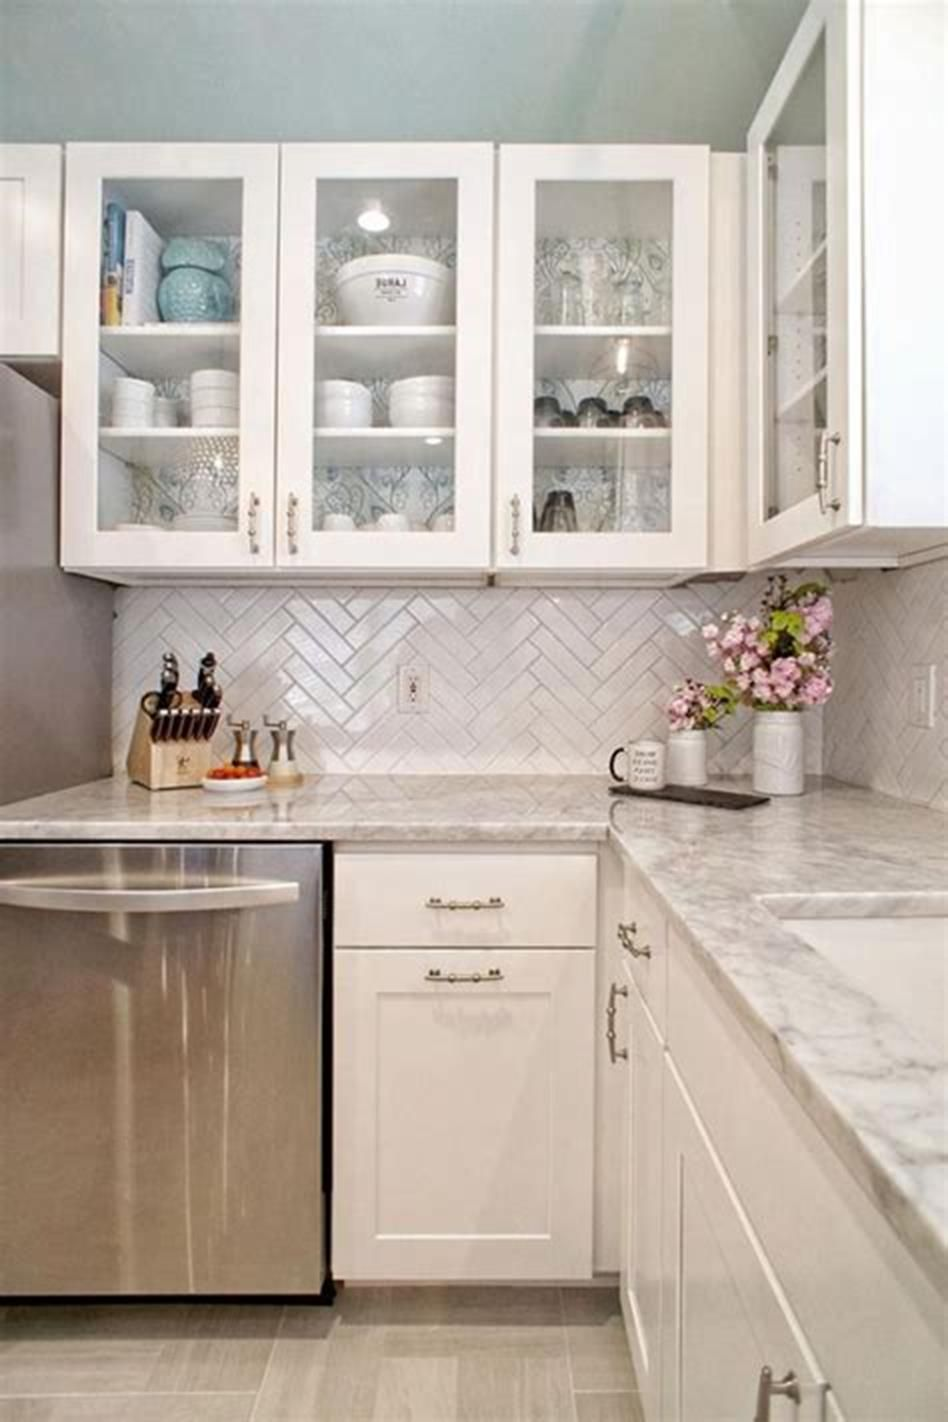 31 amazing modern kitchen ideas for 2020 you ll love with on awesome modern kitchen design ideas recommendations for you id=53505